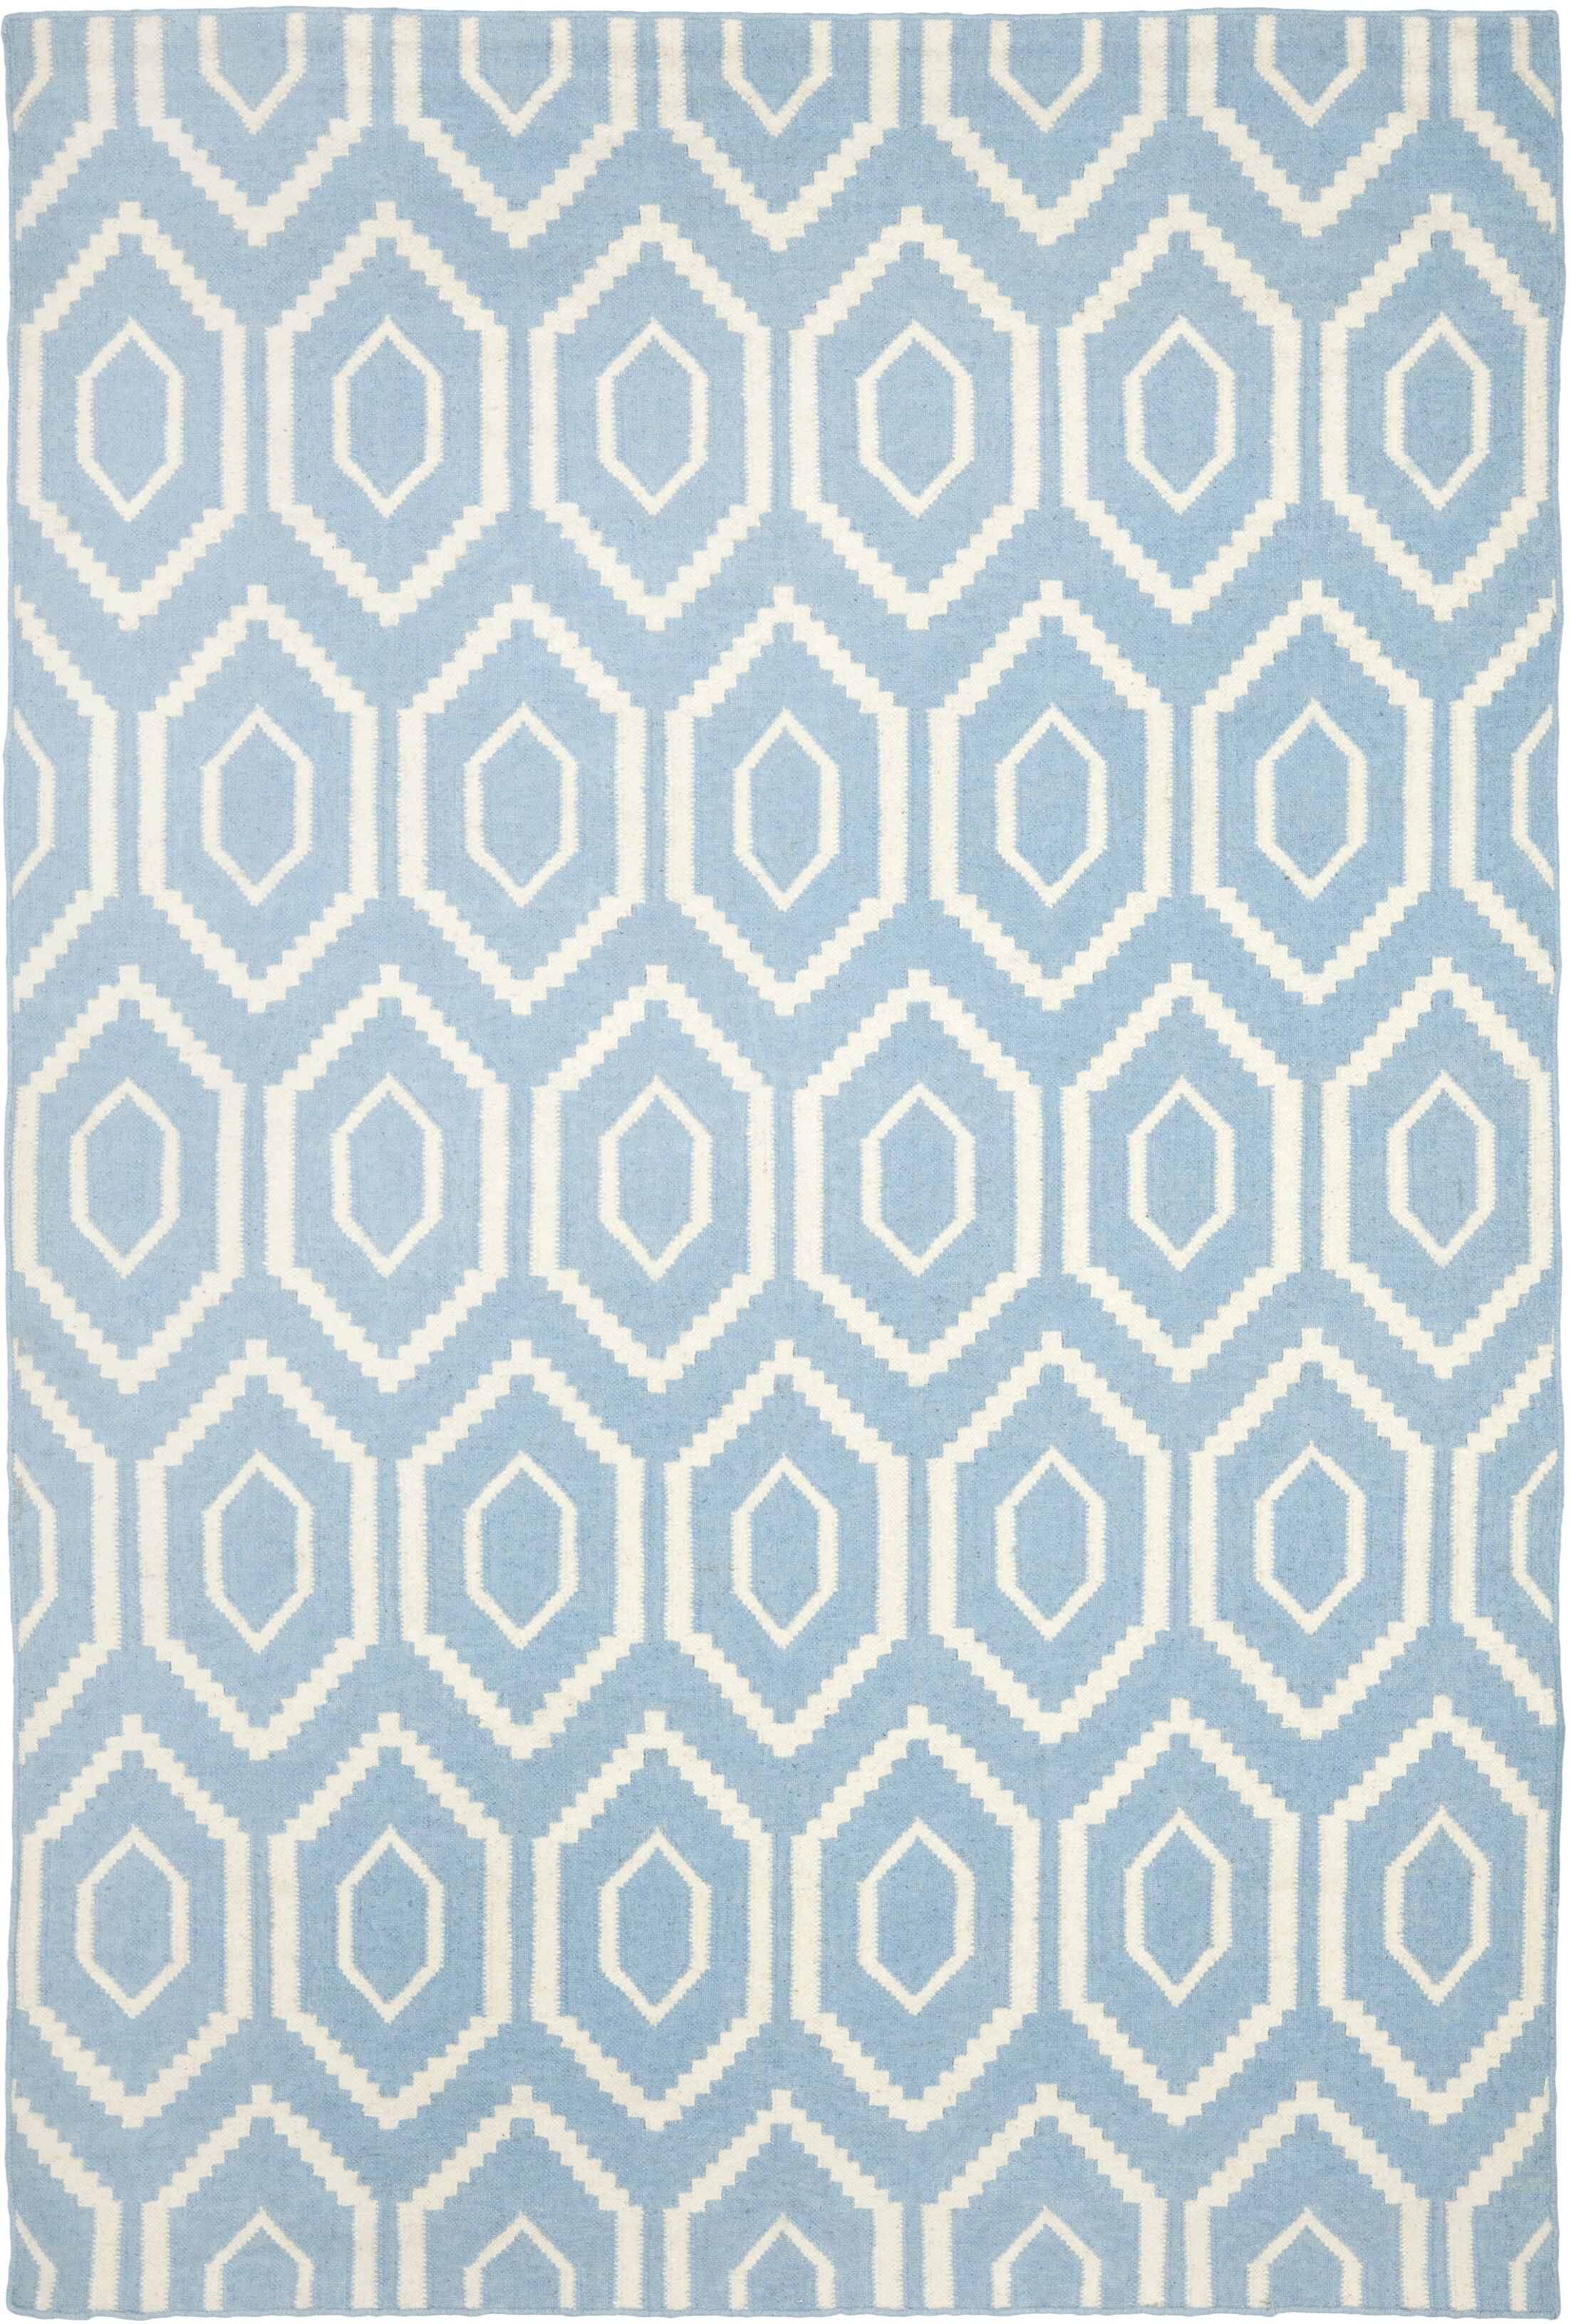 Gem Jam Hand-Woven Wool Blue/Ivory Area Rug Rug Size: Rectangle 10' x 14'